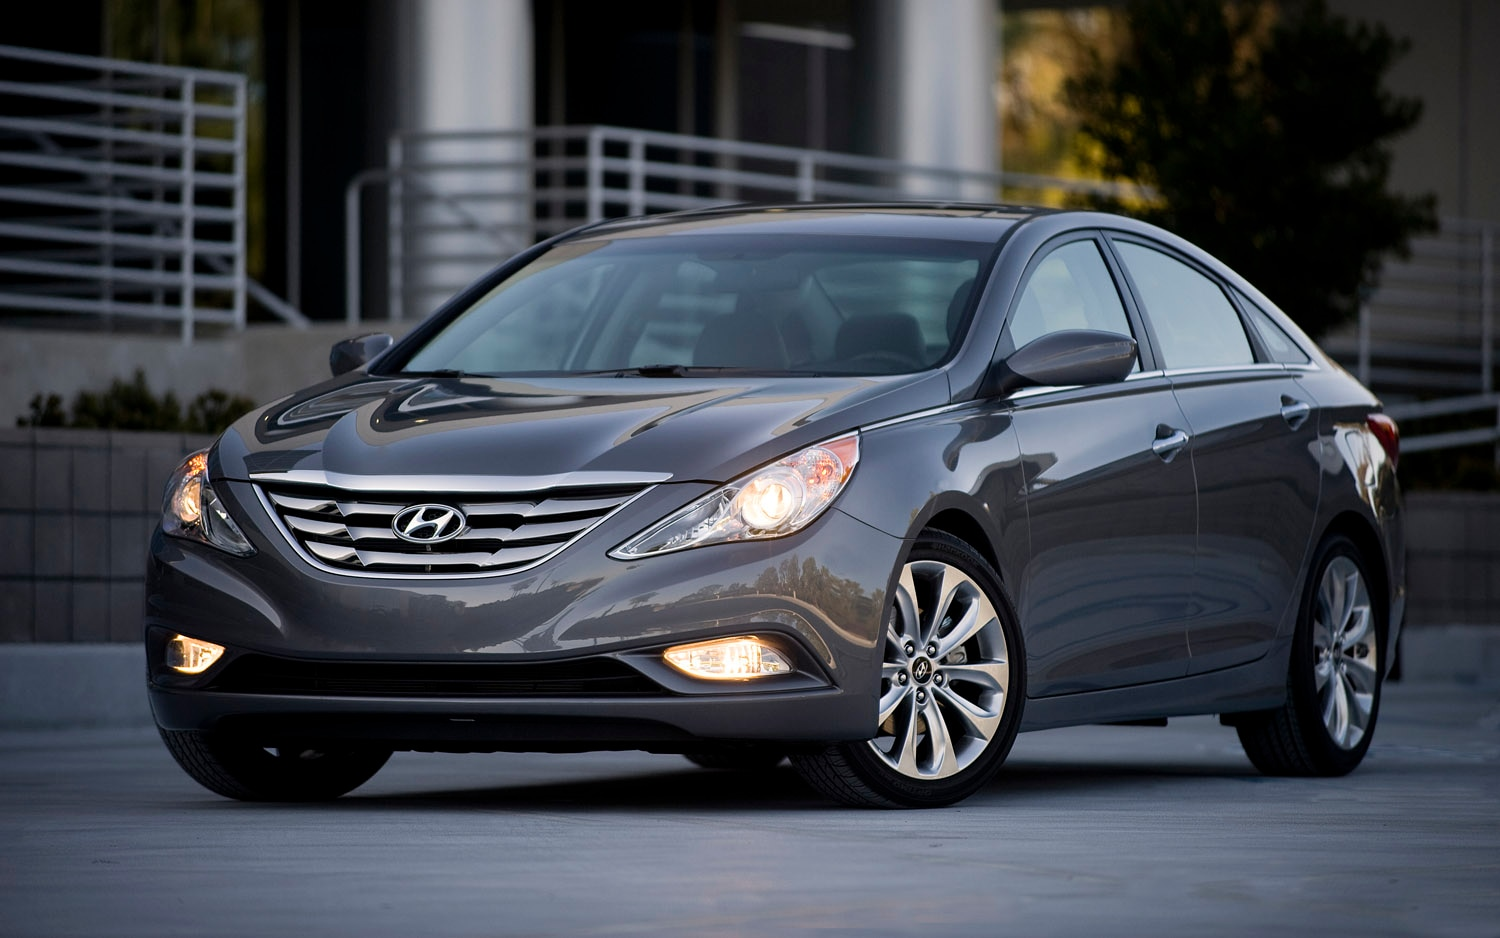 2012 Hyundai Sonata Front Three Quarter1